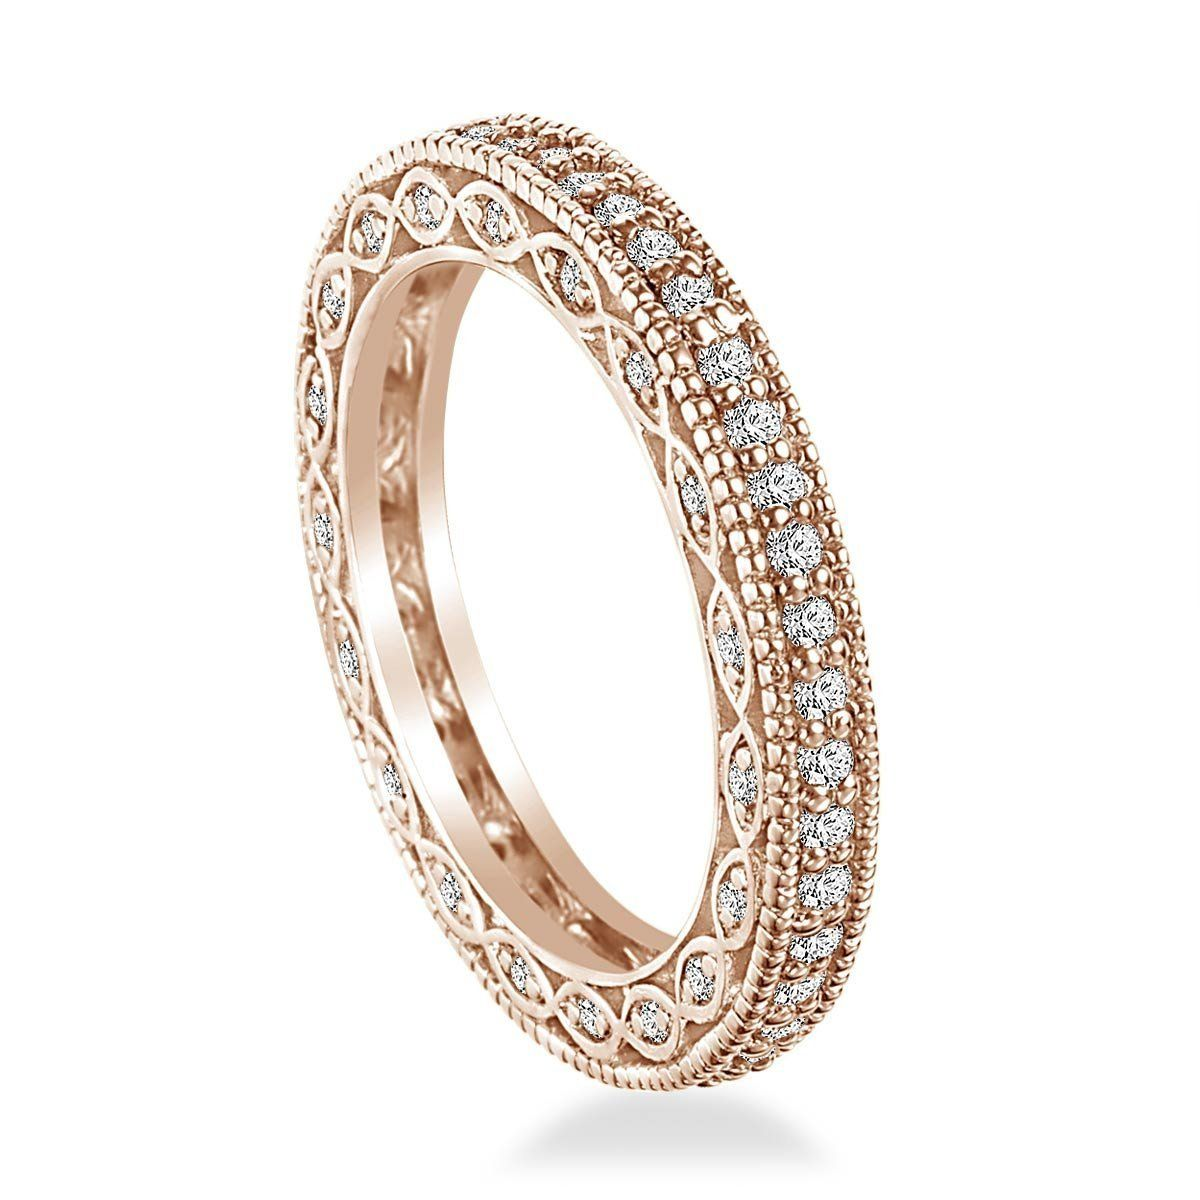 Vintage style wedding band- I actually like the rose gold ...